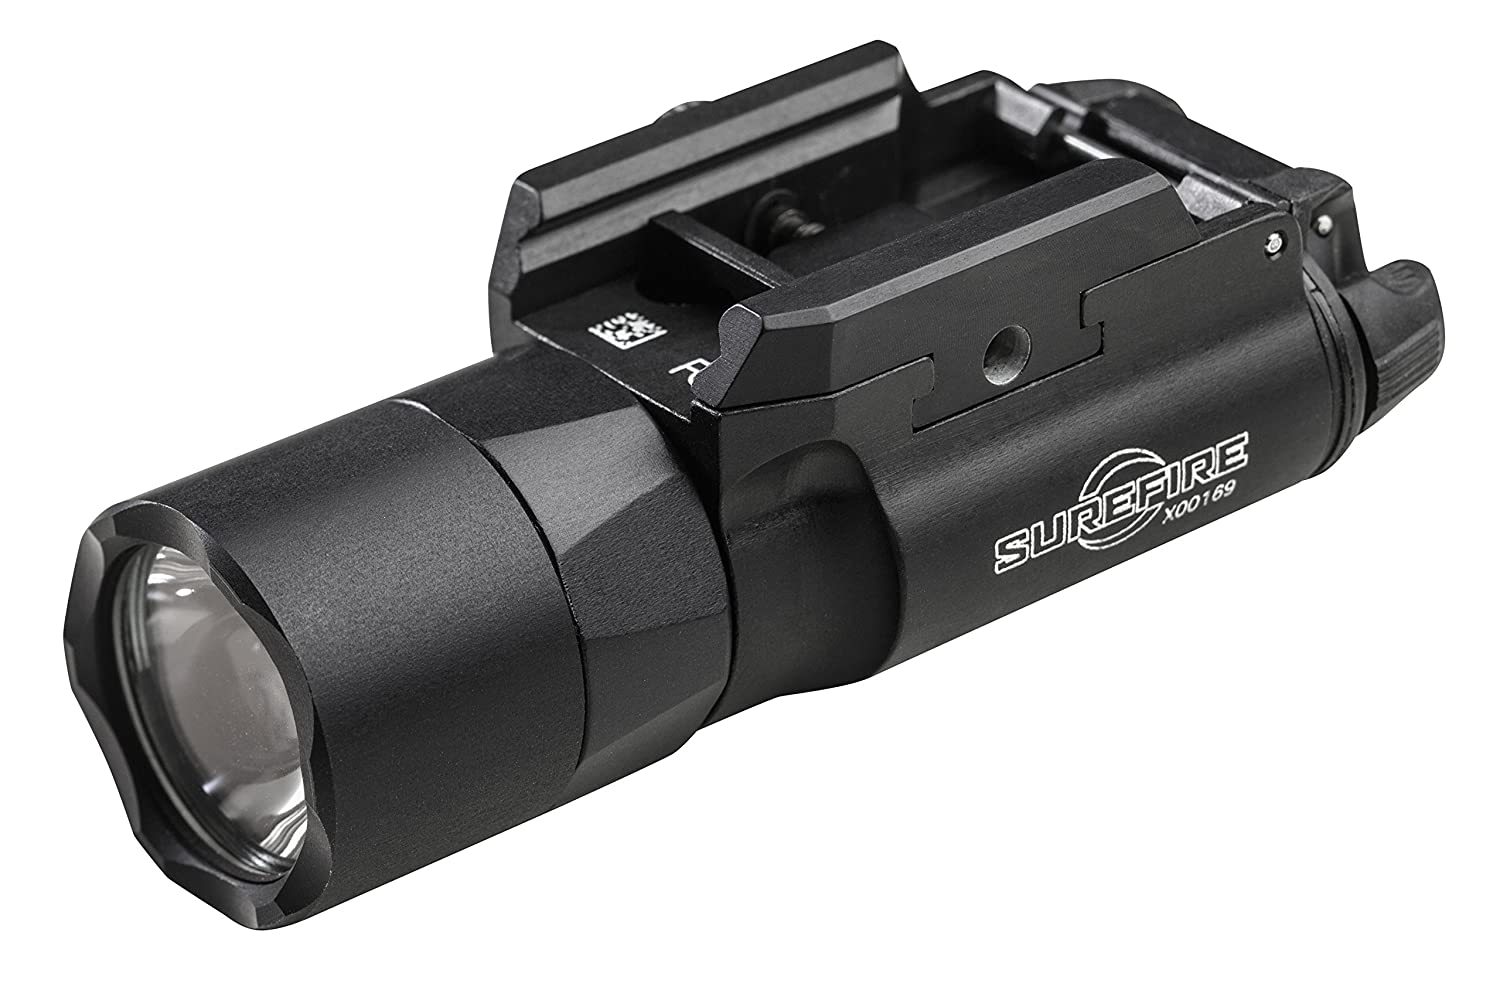 SureFire X300 Ultra LED Handgun or Long Gun WeaponLight with T-Slot Mount, Black